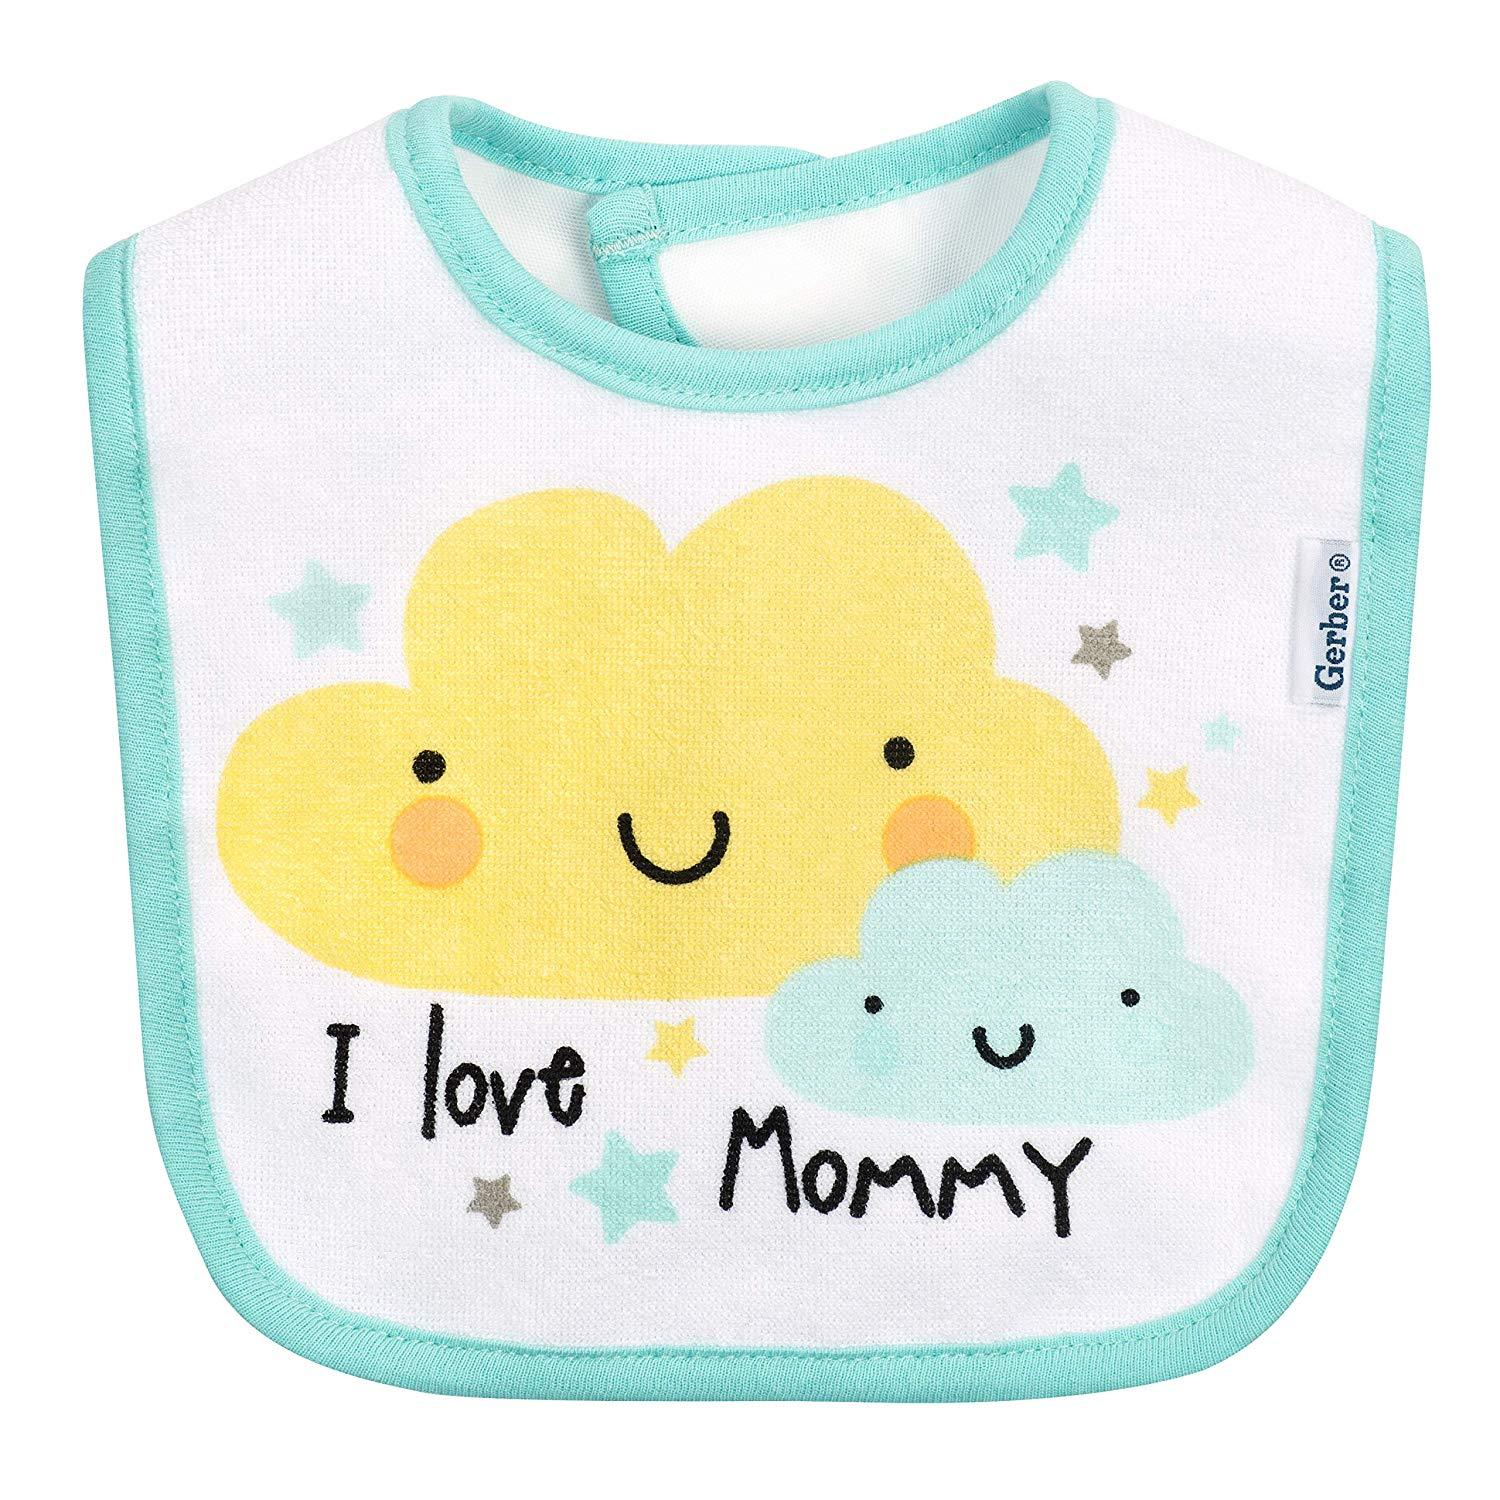 28ea1daf0cc89 Unisex Baby Bibs & Burp Cloths | Gerber Childrenswear